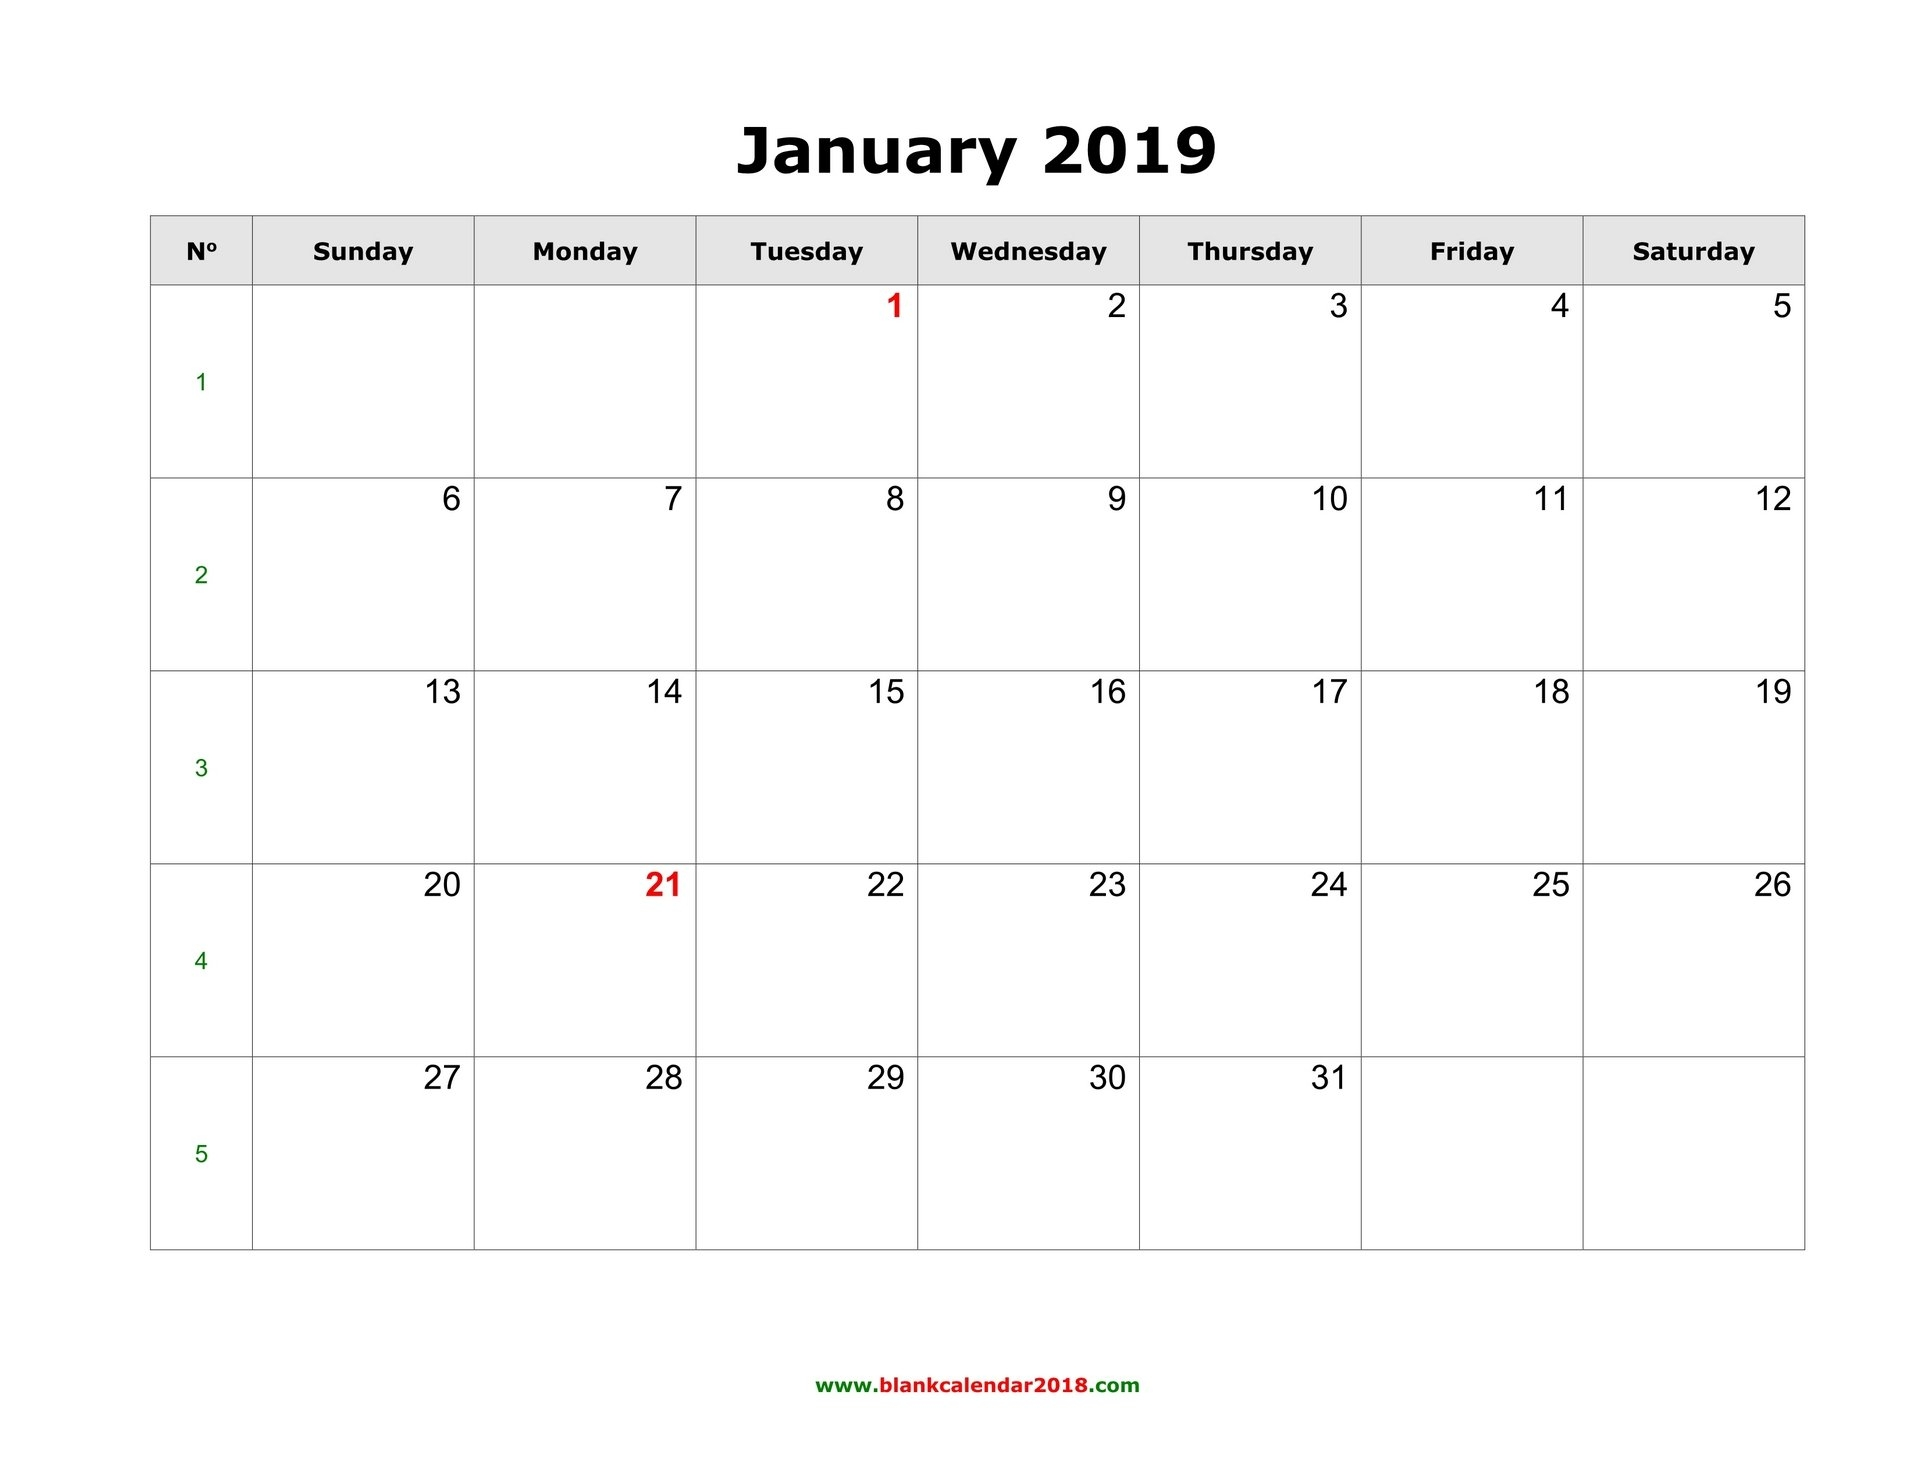 Blank Calendar For January 2019 Calendar 2019 Doc